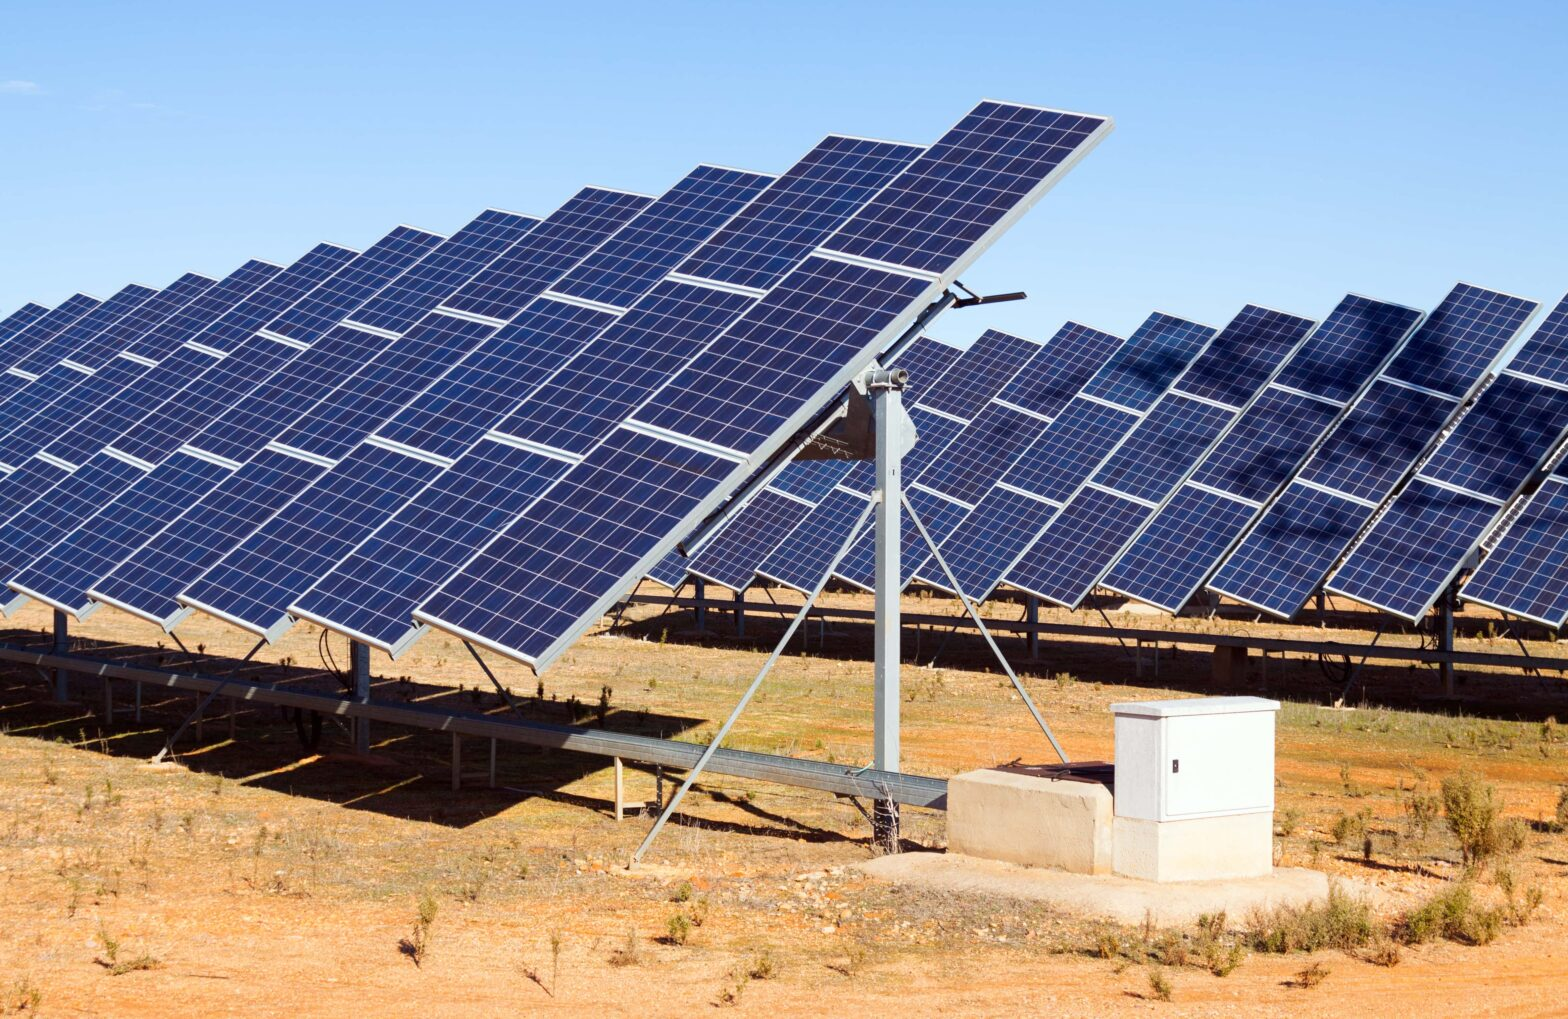 Enhance Productivity with Solar Project Management Software